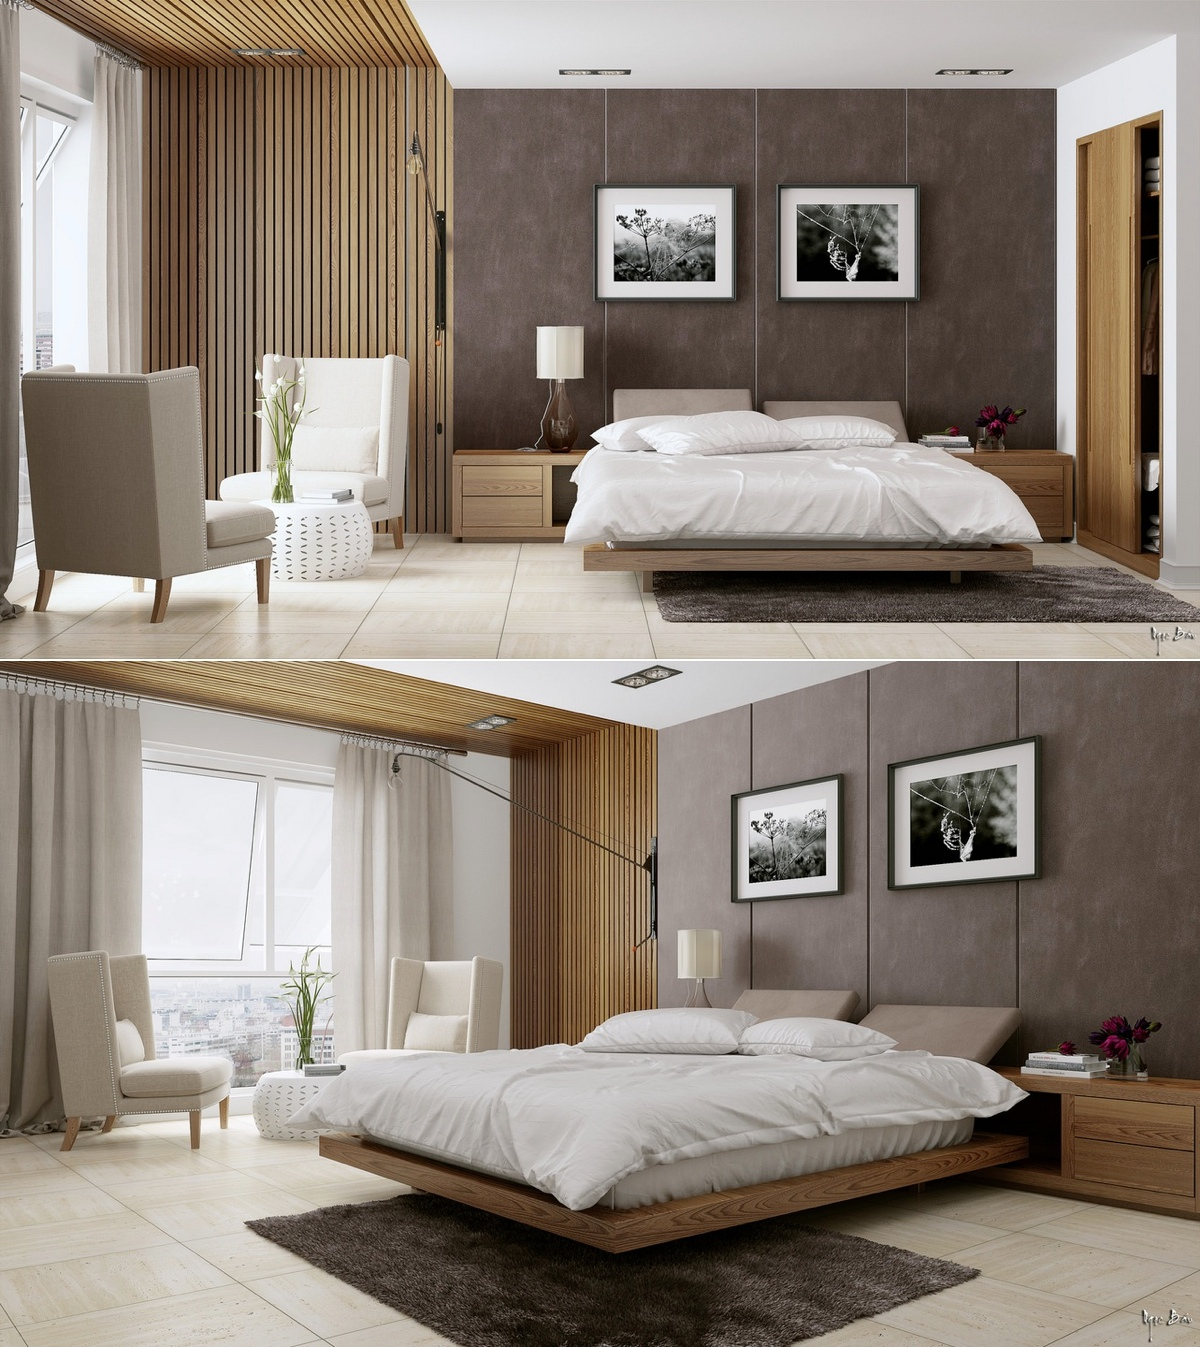 Stylish bedroom designs with beautiful creative details for Images of beds for bedroom